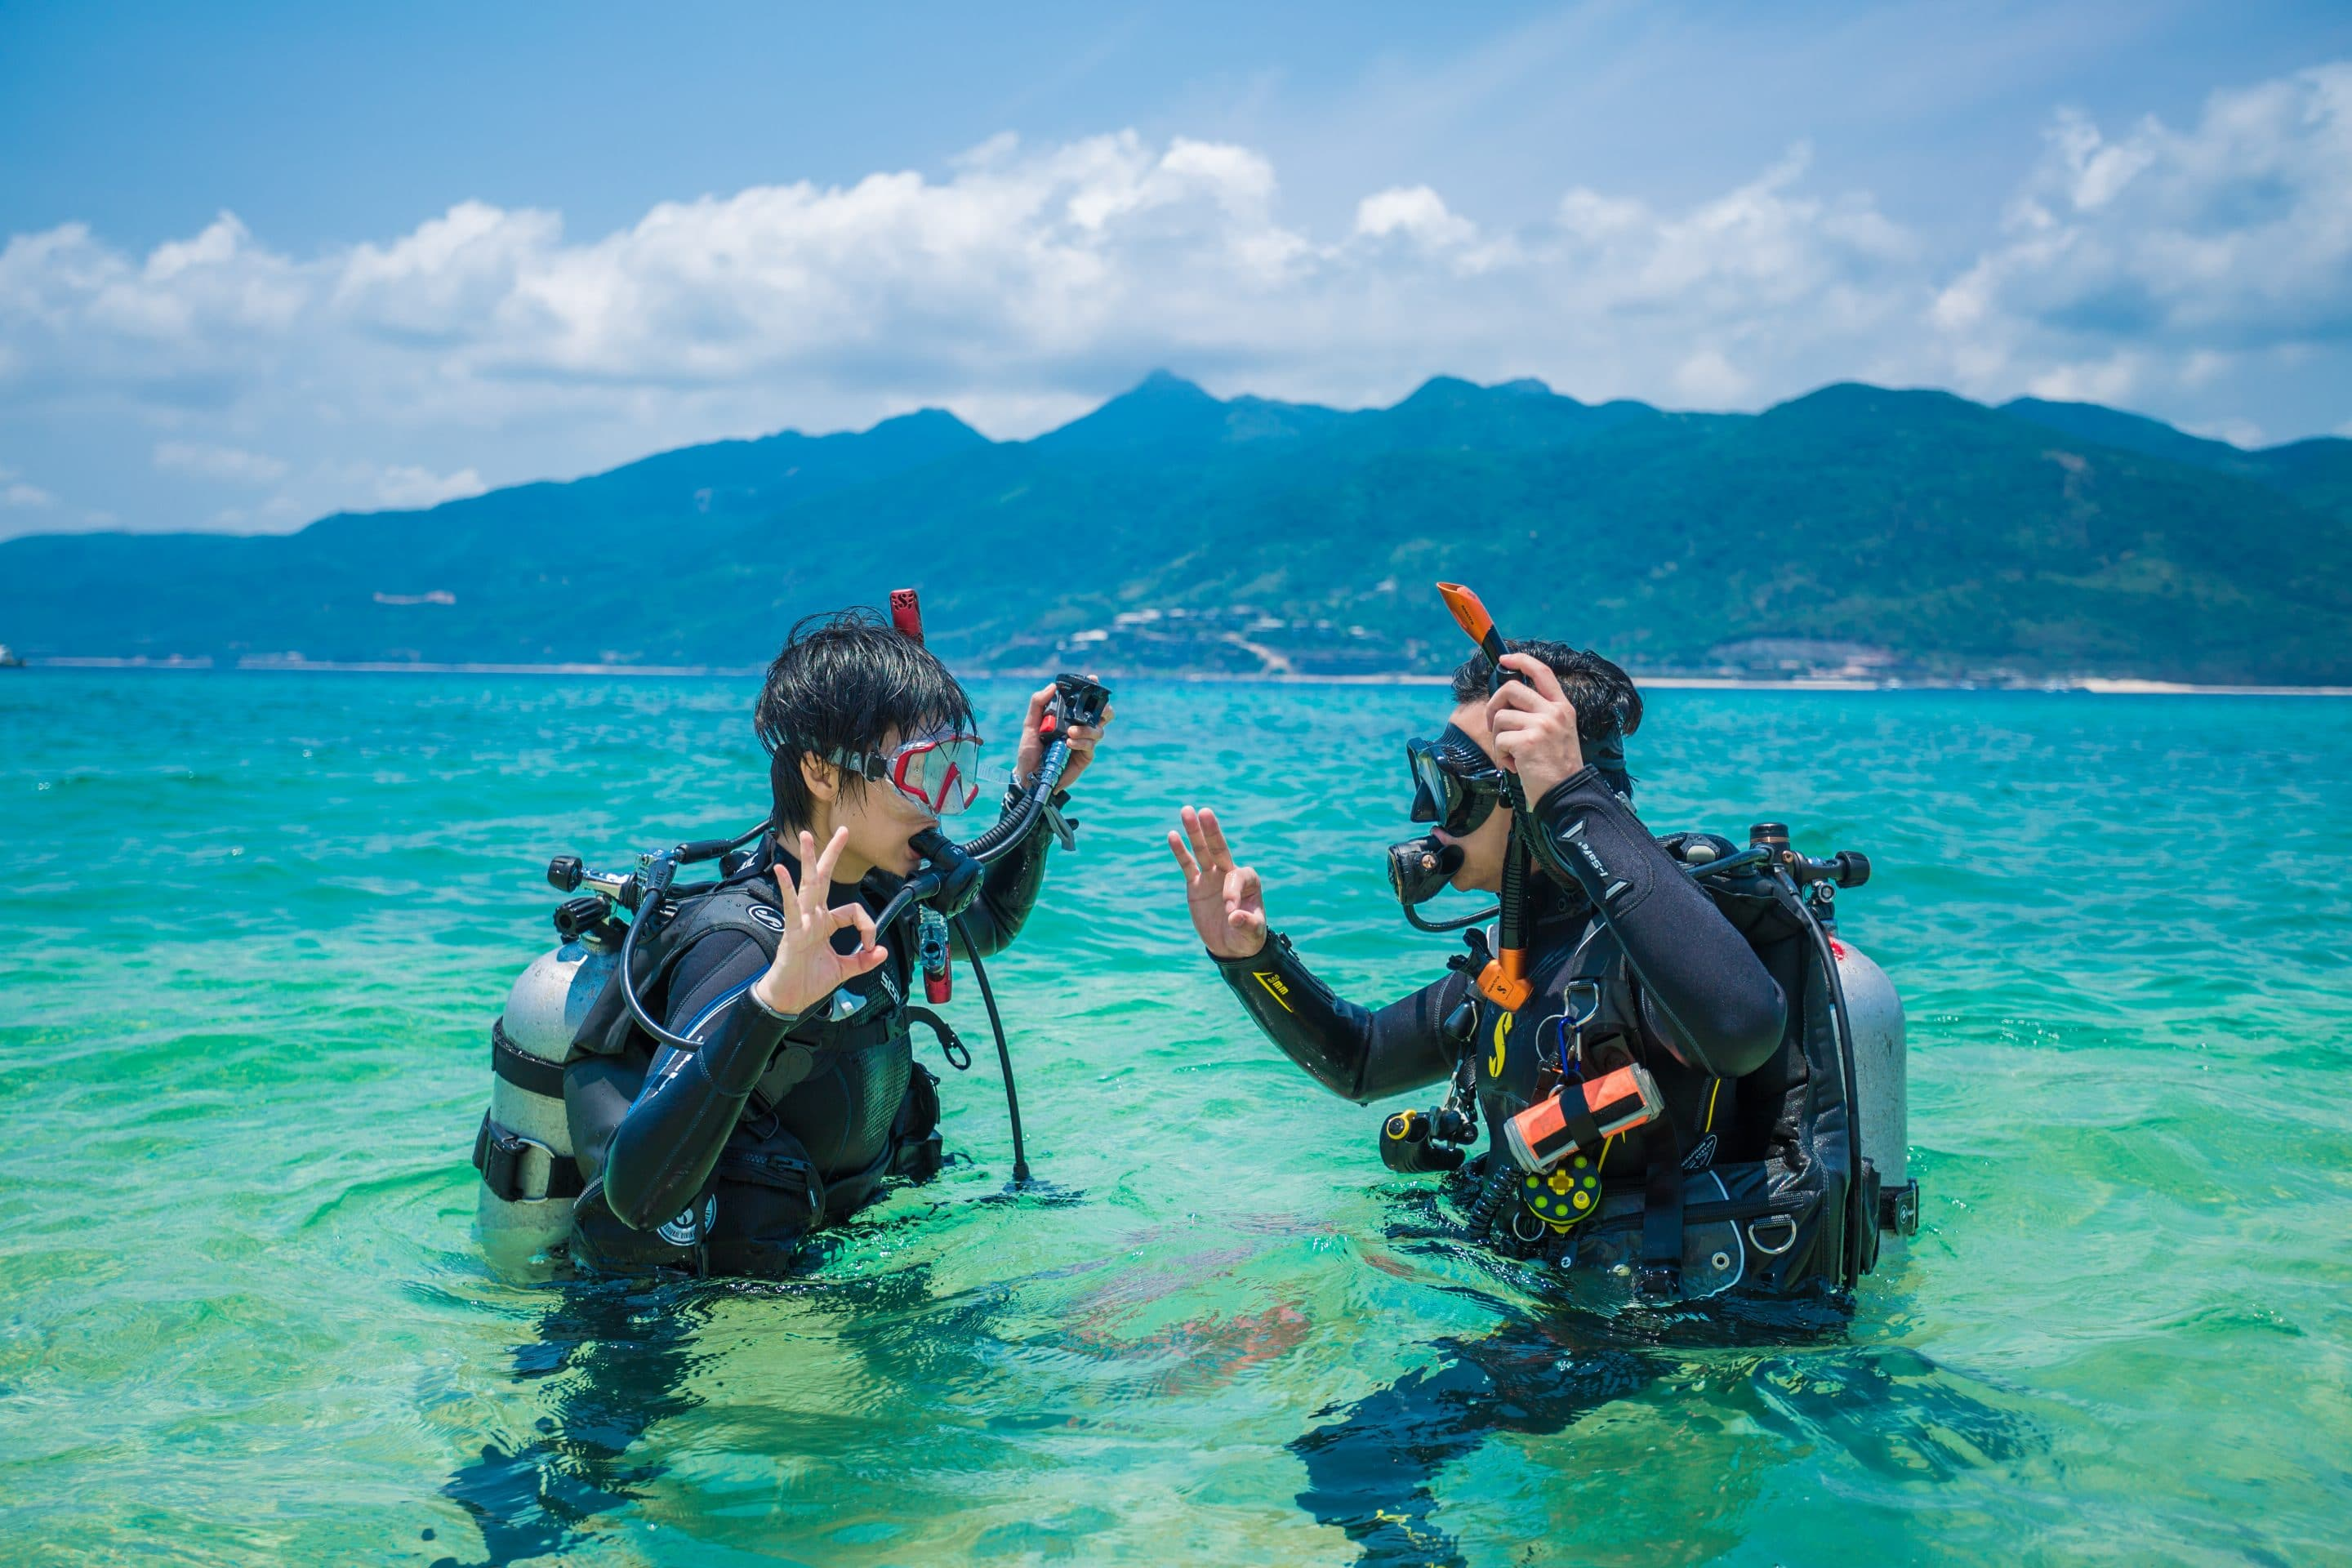 Two people practice scuba diving standing in water